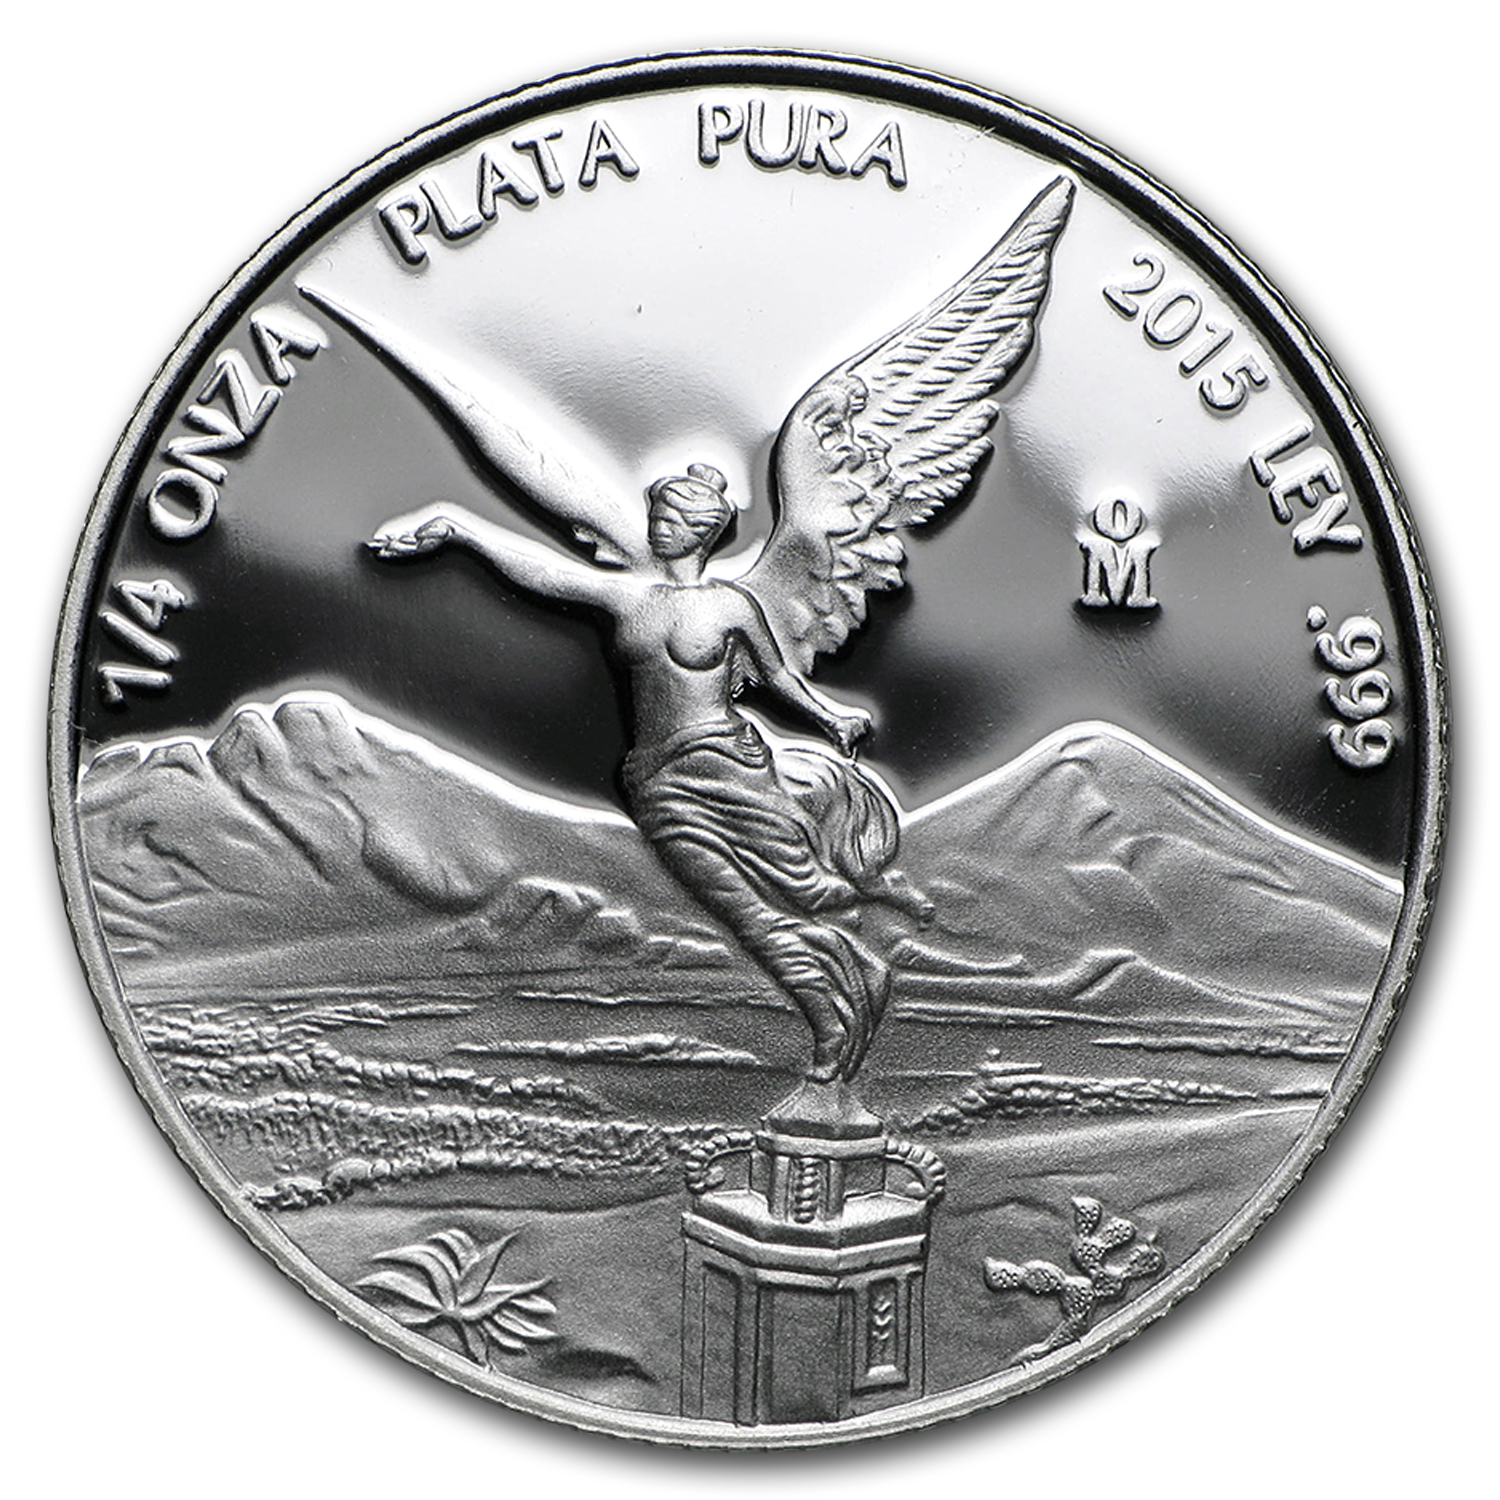 2015 Mexico 1/4 oz Silver Libertad Proof (In Capsule)